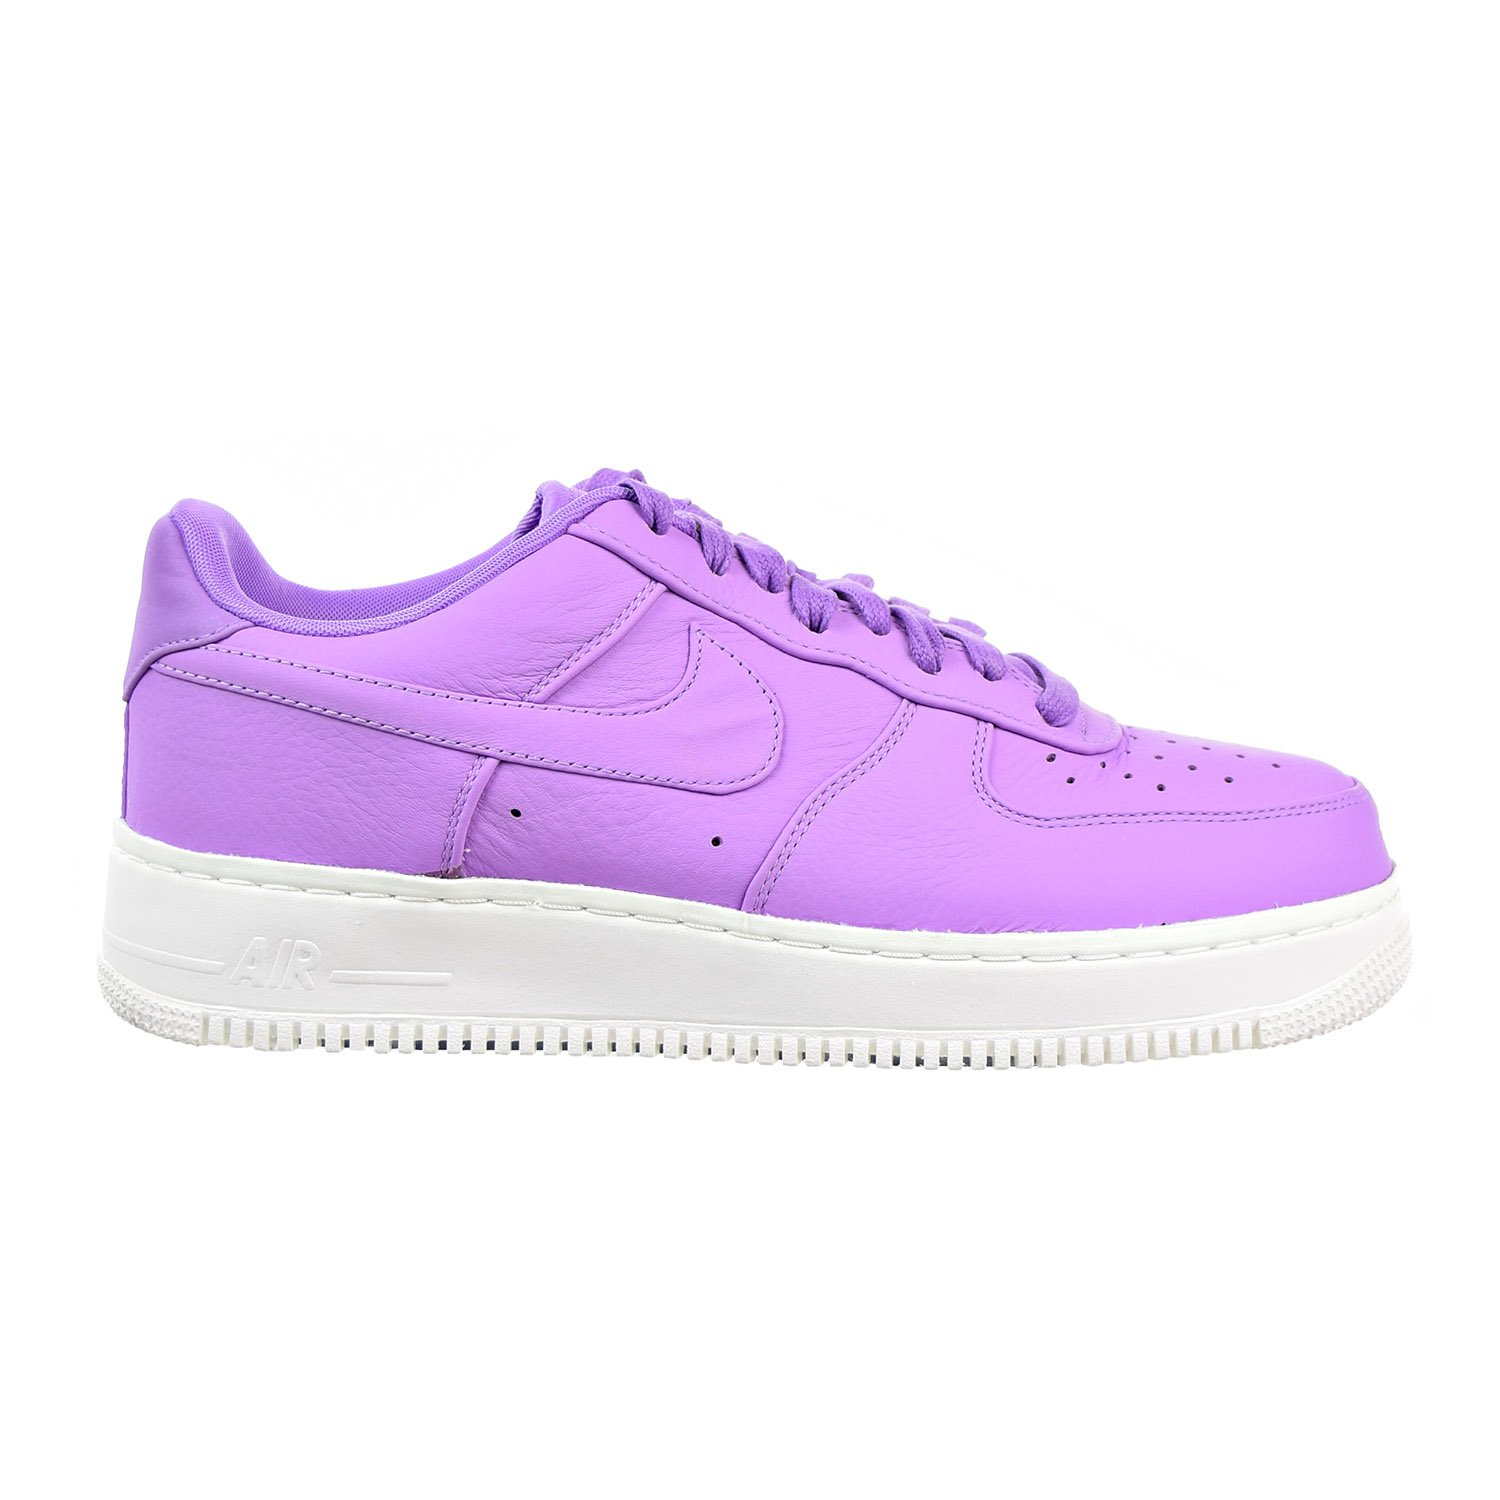 quality design 2675d 1e98a Nike Mens Lab Air Force 1 Low Purple/Stardust Leather